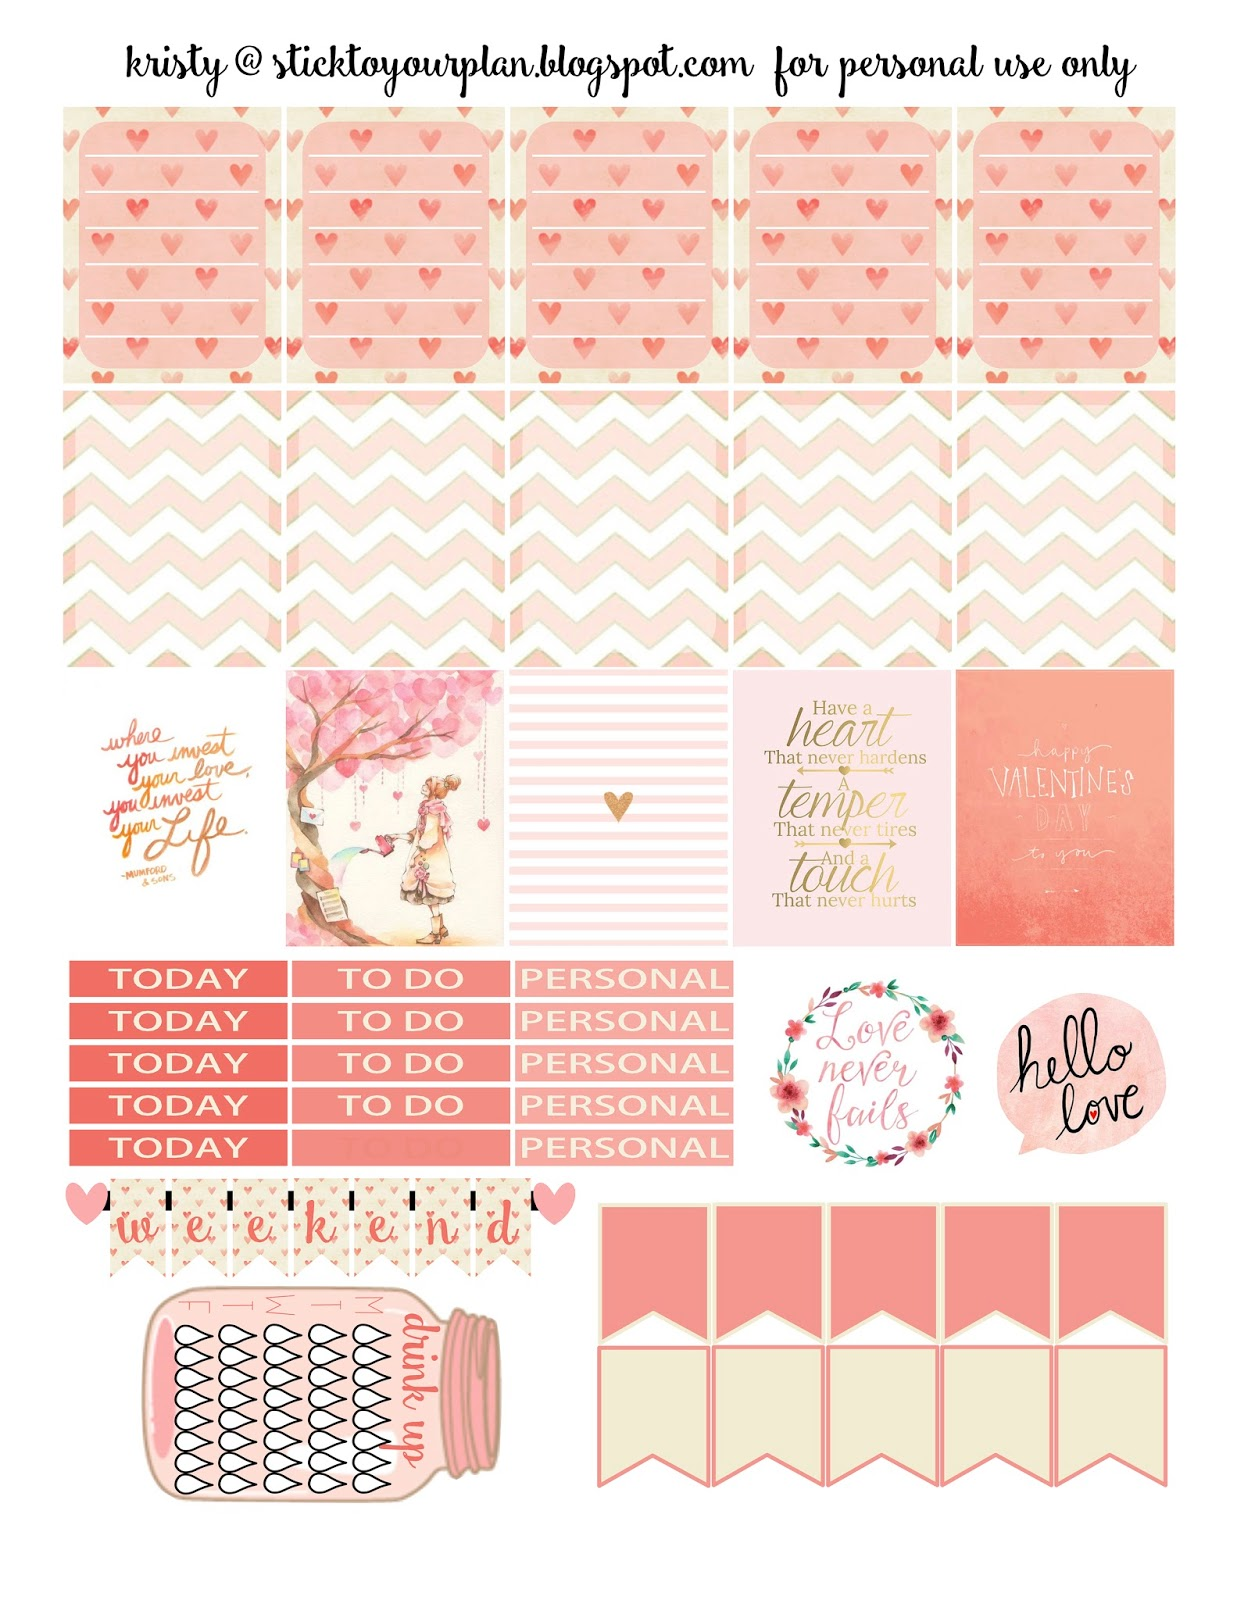 Planner calendrier on pinterest planner stickers free planner and free printable planner for Planner pinterest